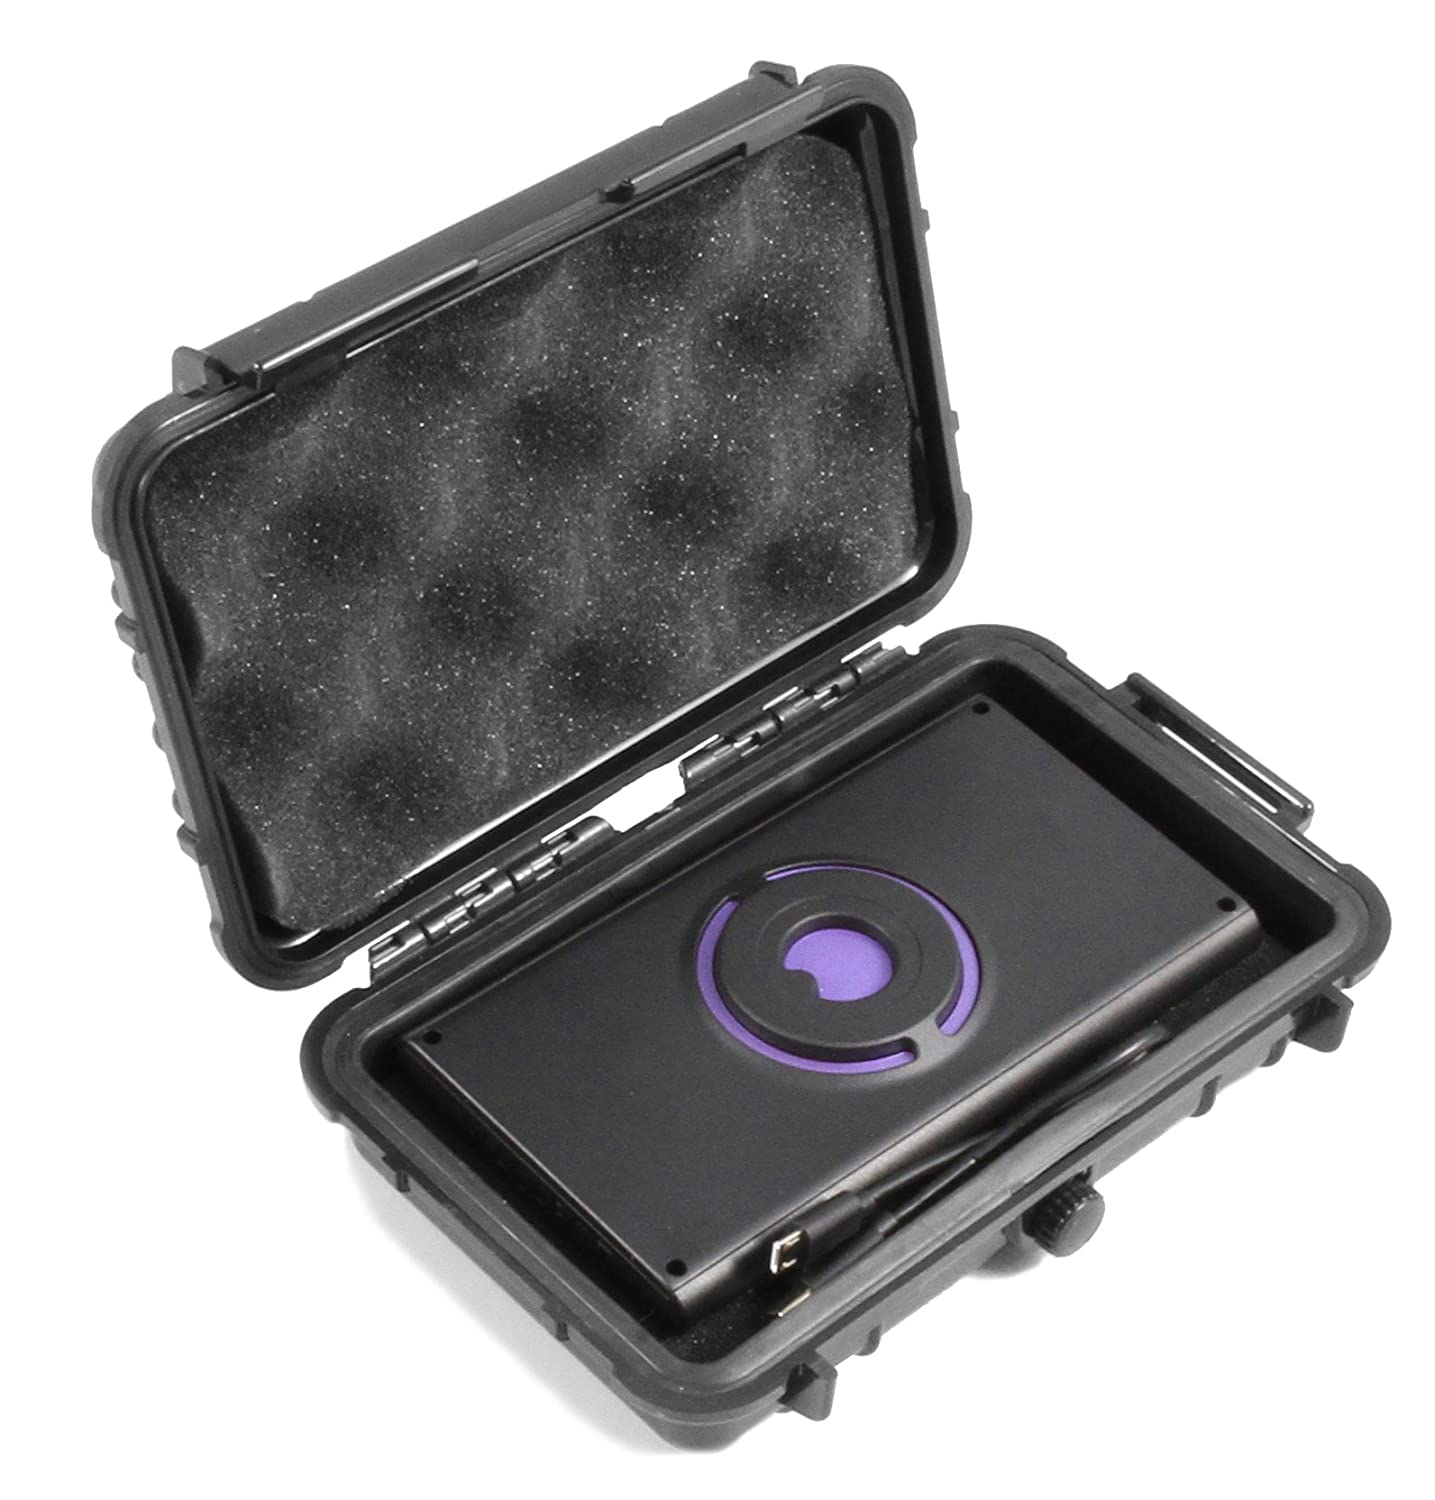 CASEMATIX Rugged Waterproof Imaging Sensor Case Compatible with Walabot DIY, Developer, Pro in Wall Imager and Cables - Includes CASE ONLY, Does NOT ...